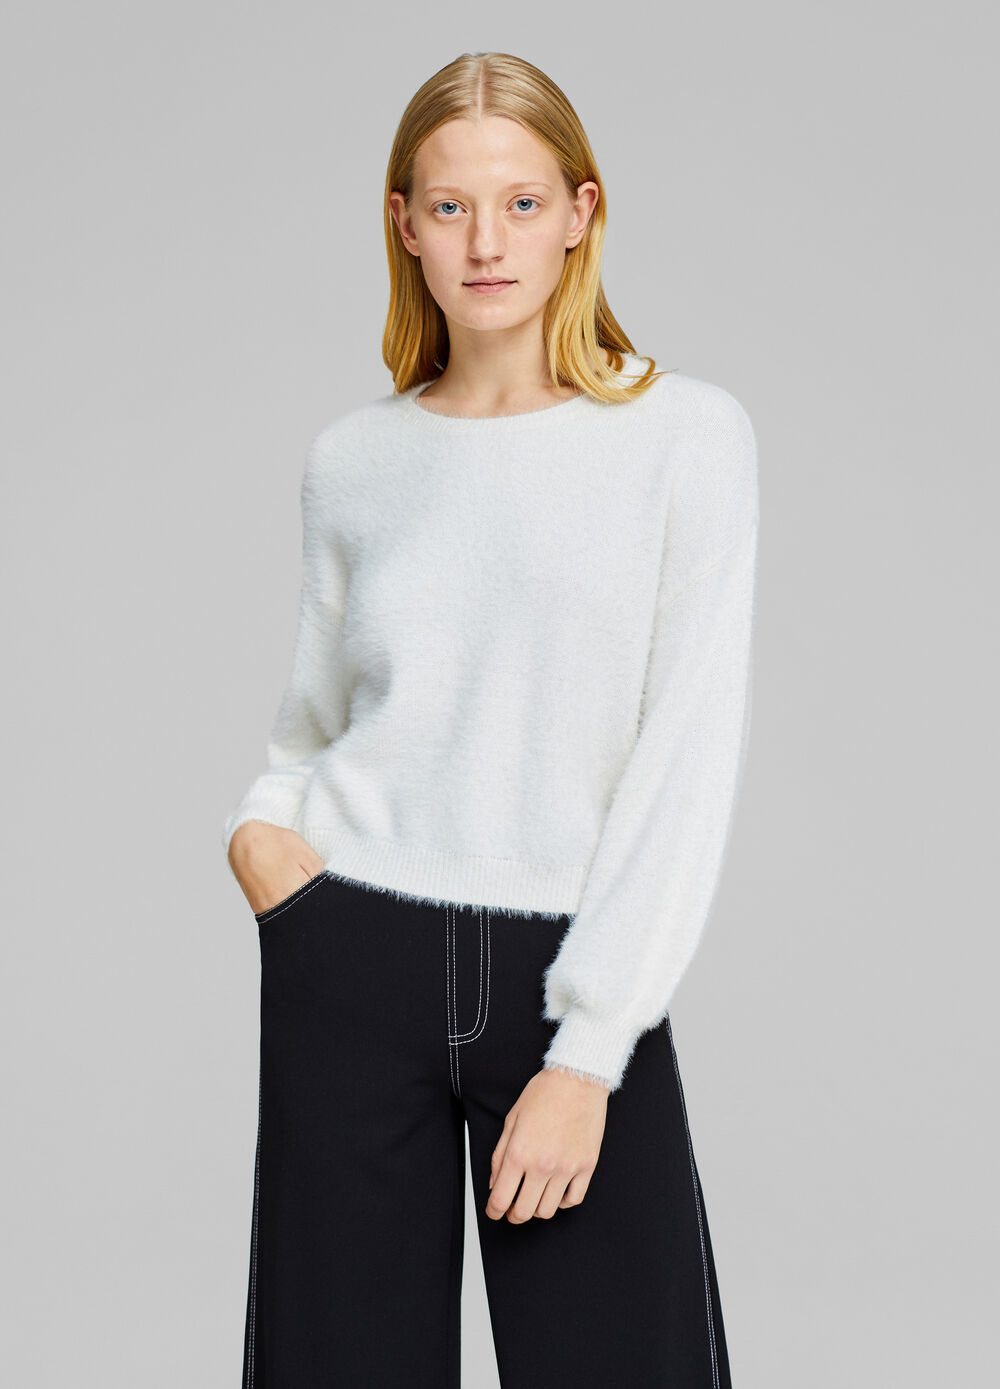 Pullover with puff sleeves